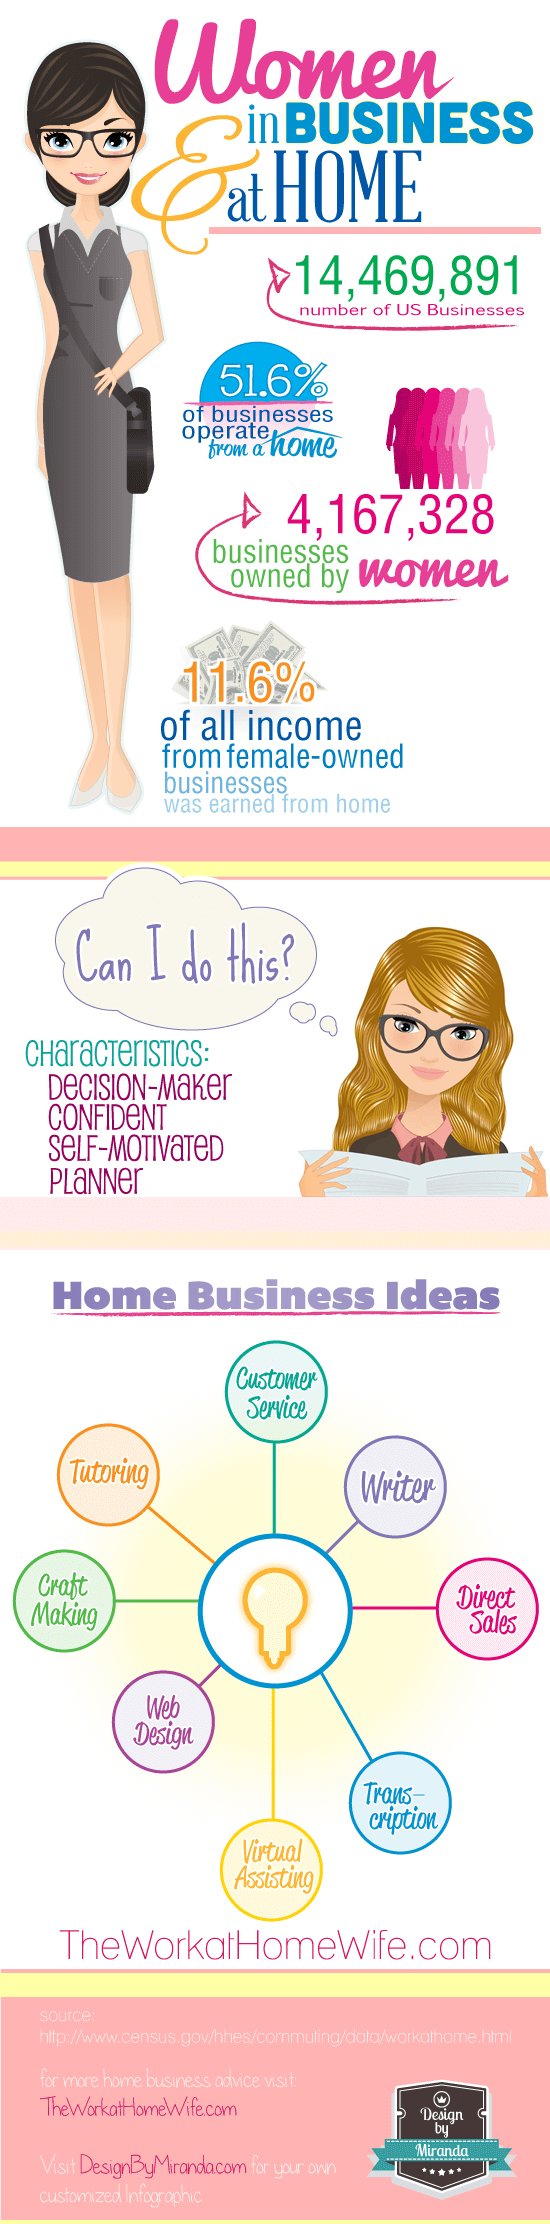 Women In Home-Based Business: Infographic | Infographic, Business ...